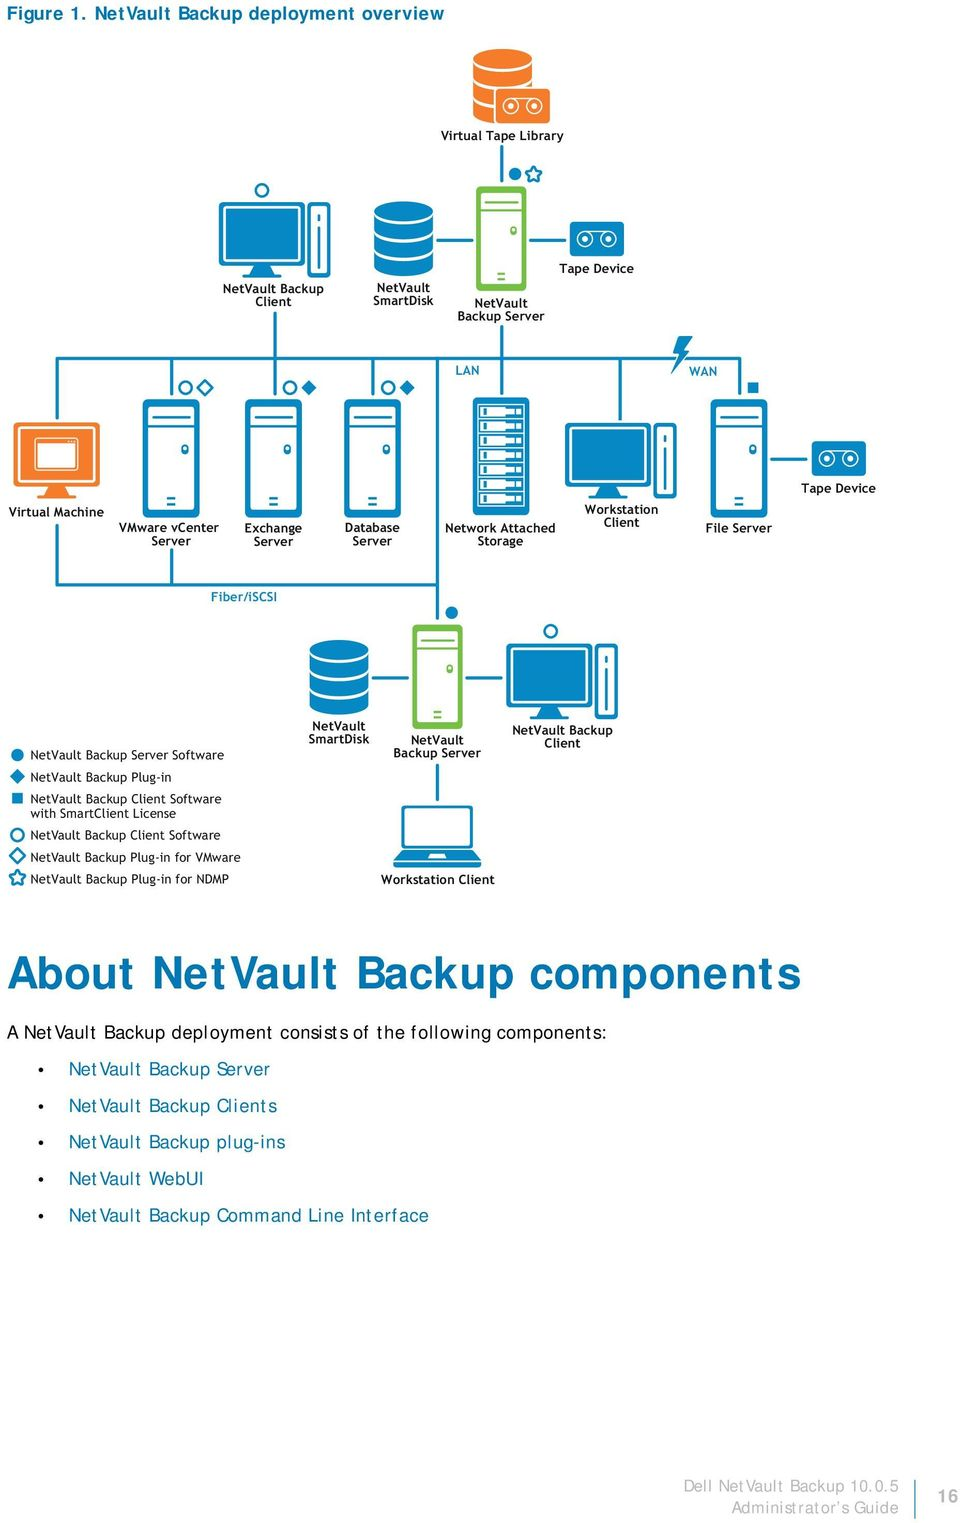 Exchange Server Database Server Network Attached Storage Workstation Client File Server Fiber/iSCSI NetVault Backup Server Software NetVault Backup Plug-in NetVault Backup Client Software with